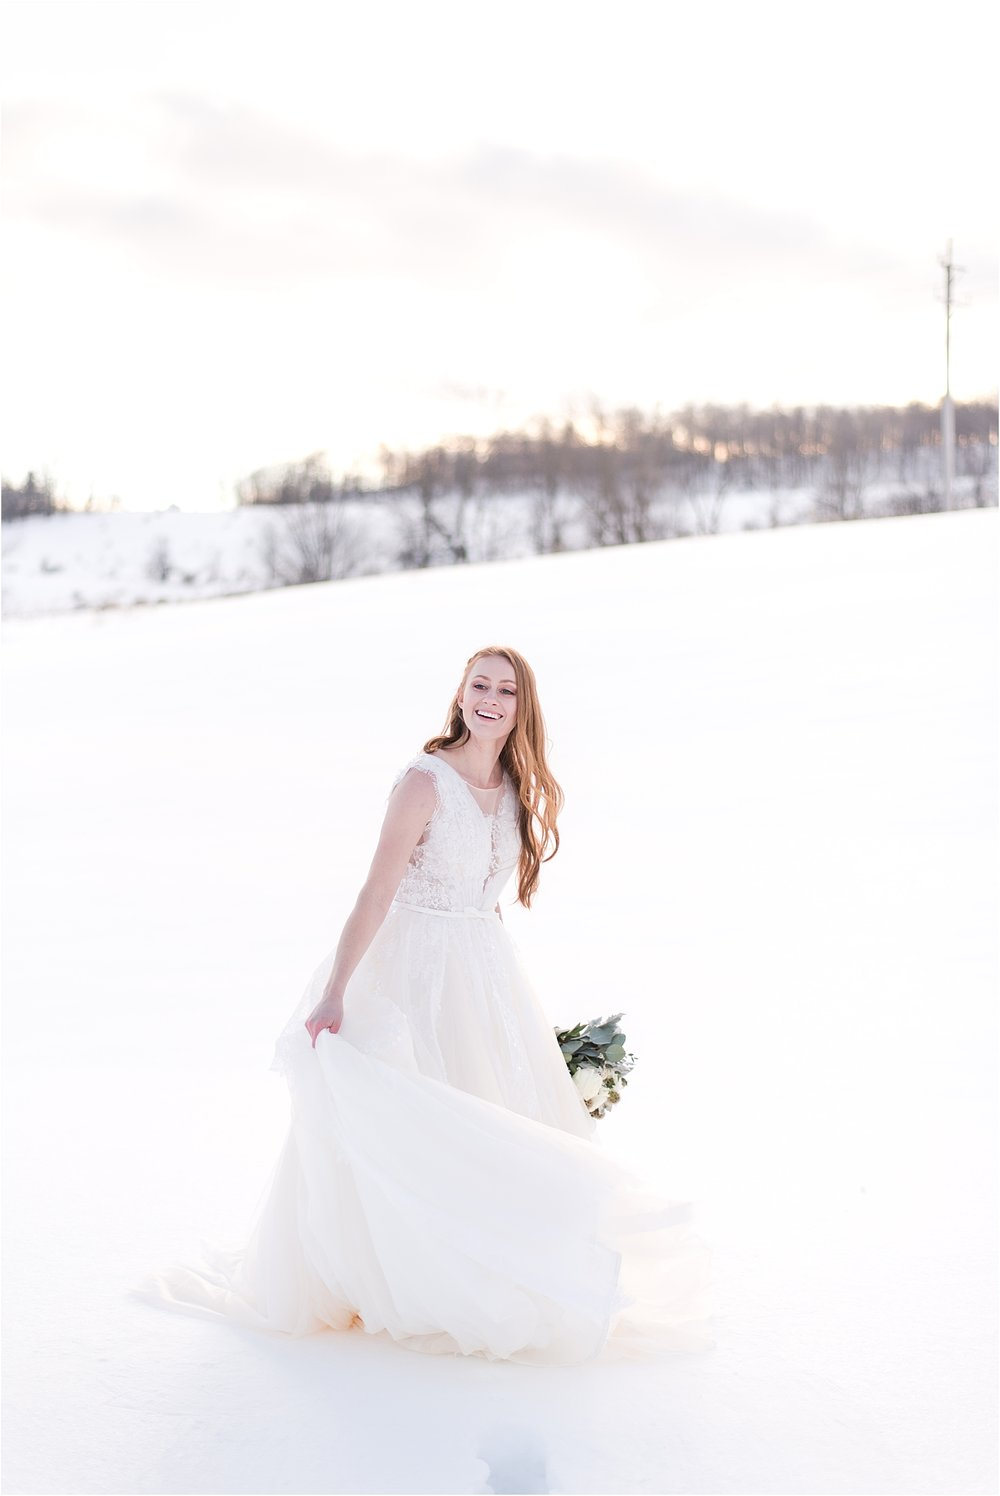 winter_bridal_inspiration_fabiana_skubic_wedding_photographer (41).jpg